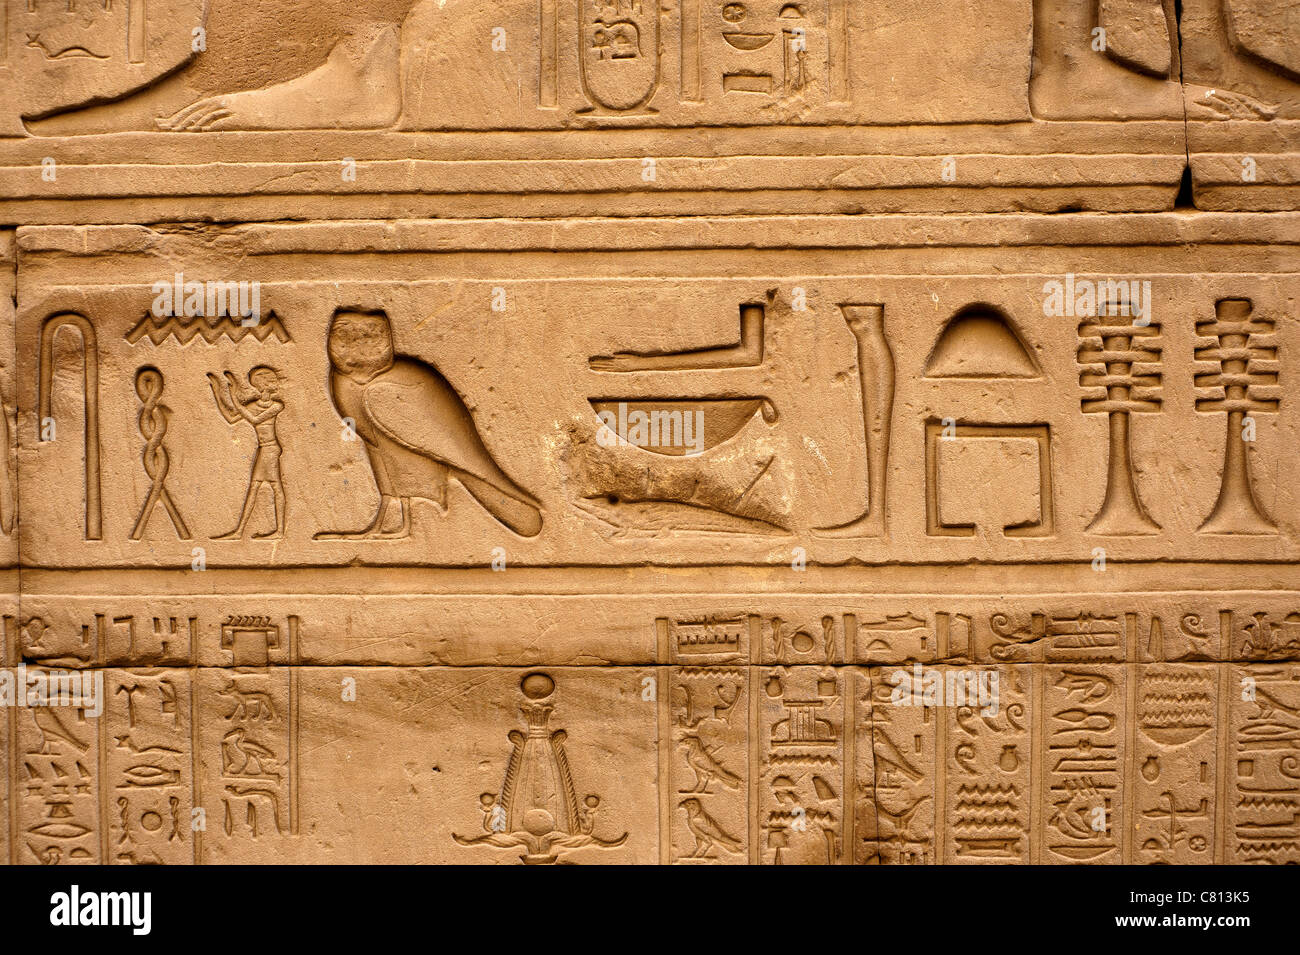 how to write egypt in hieroglyphics